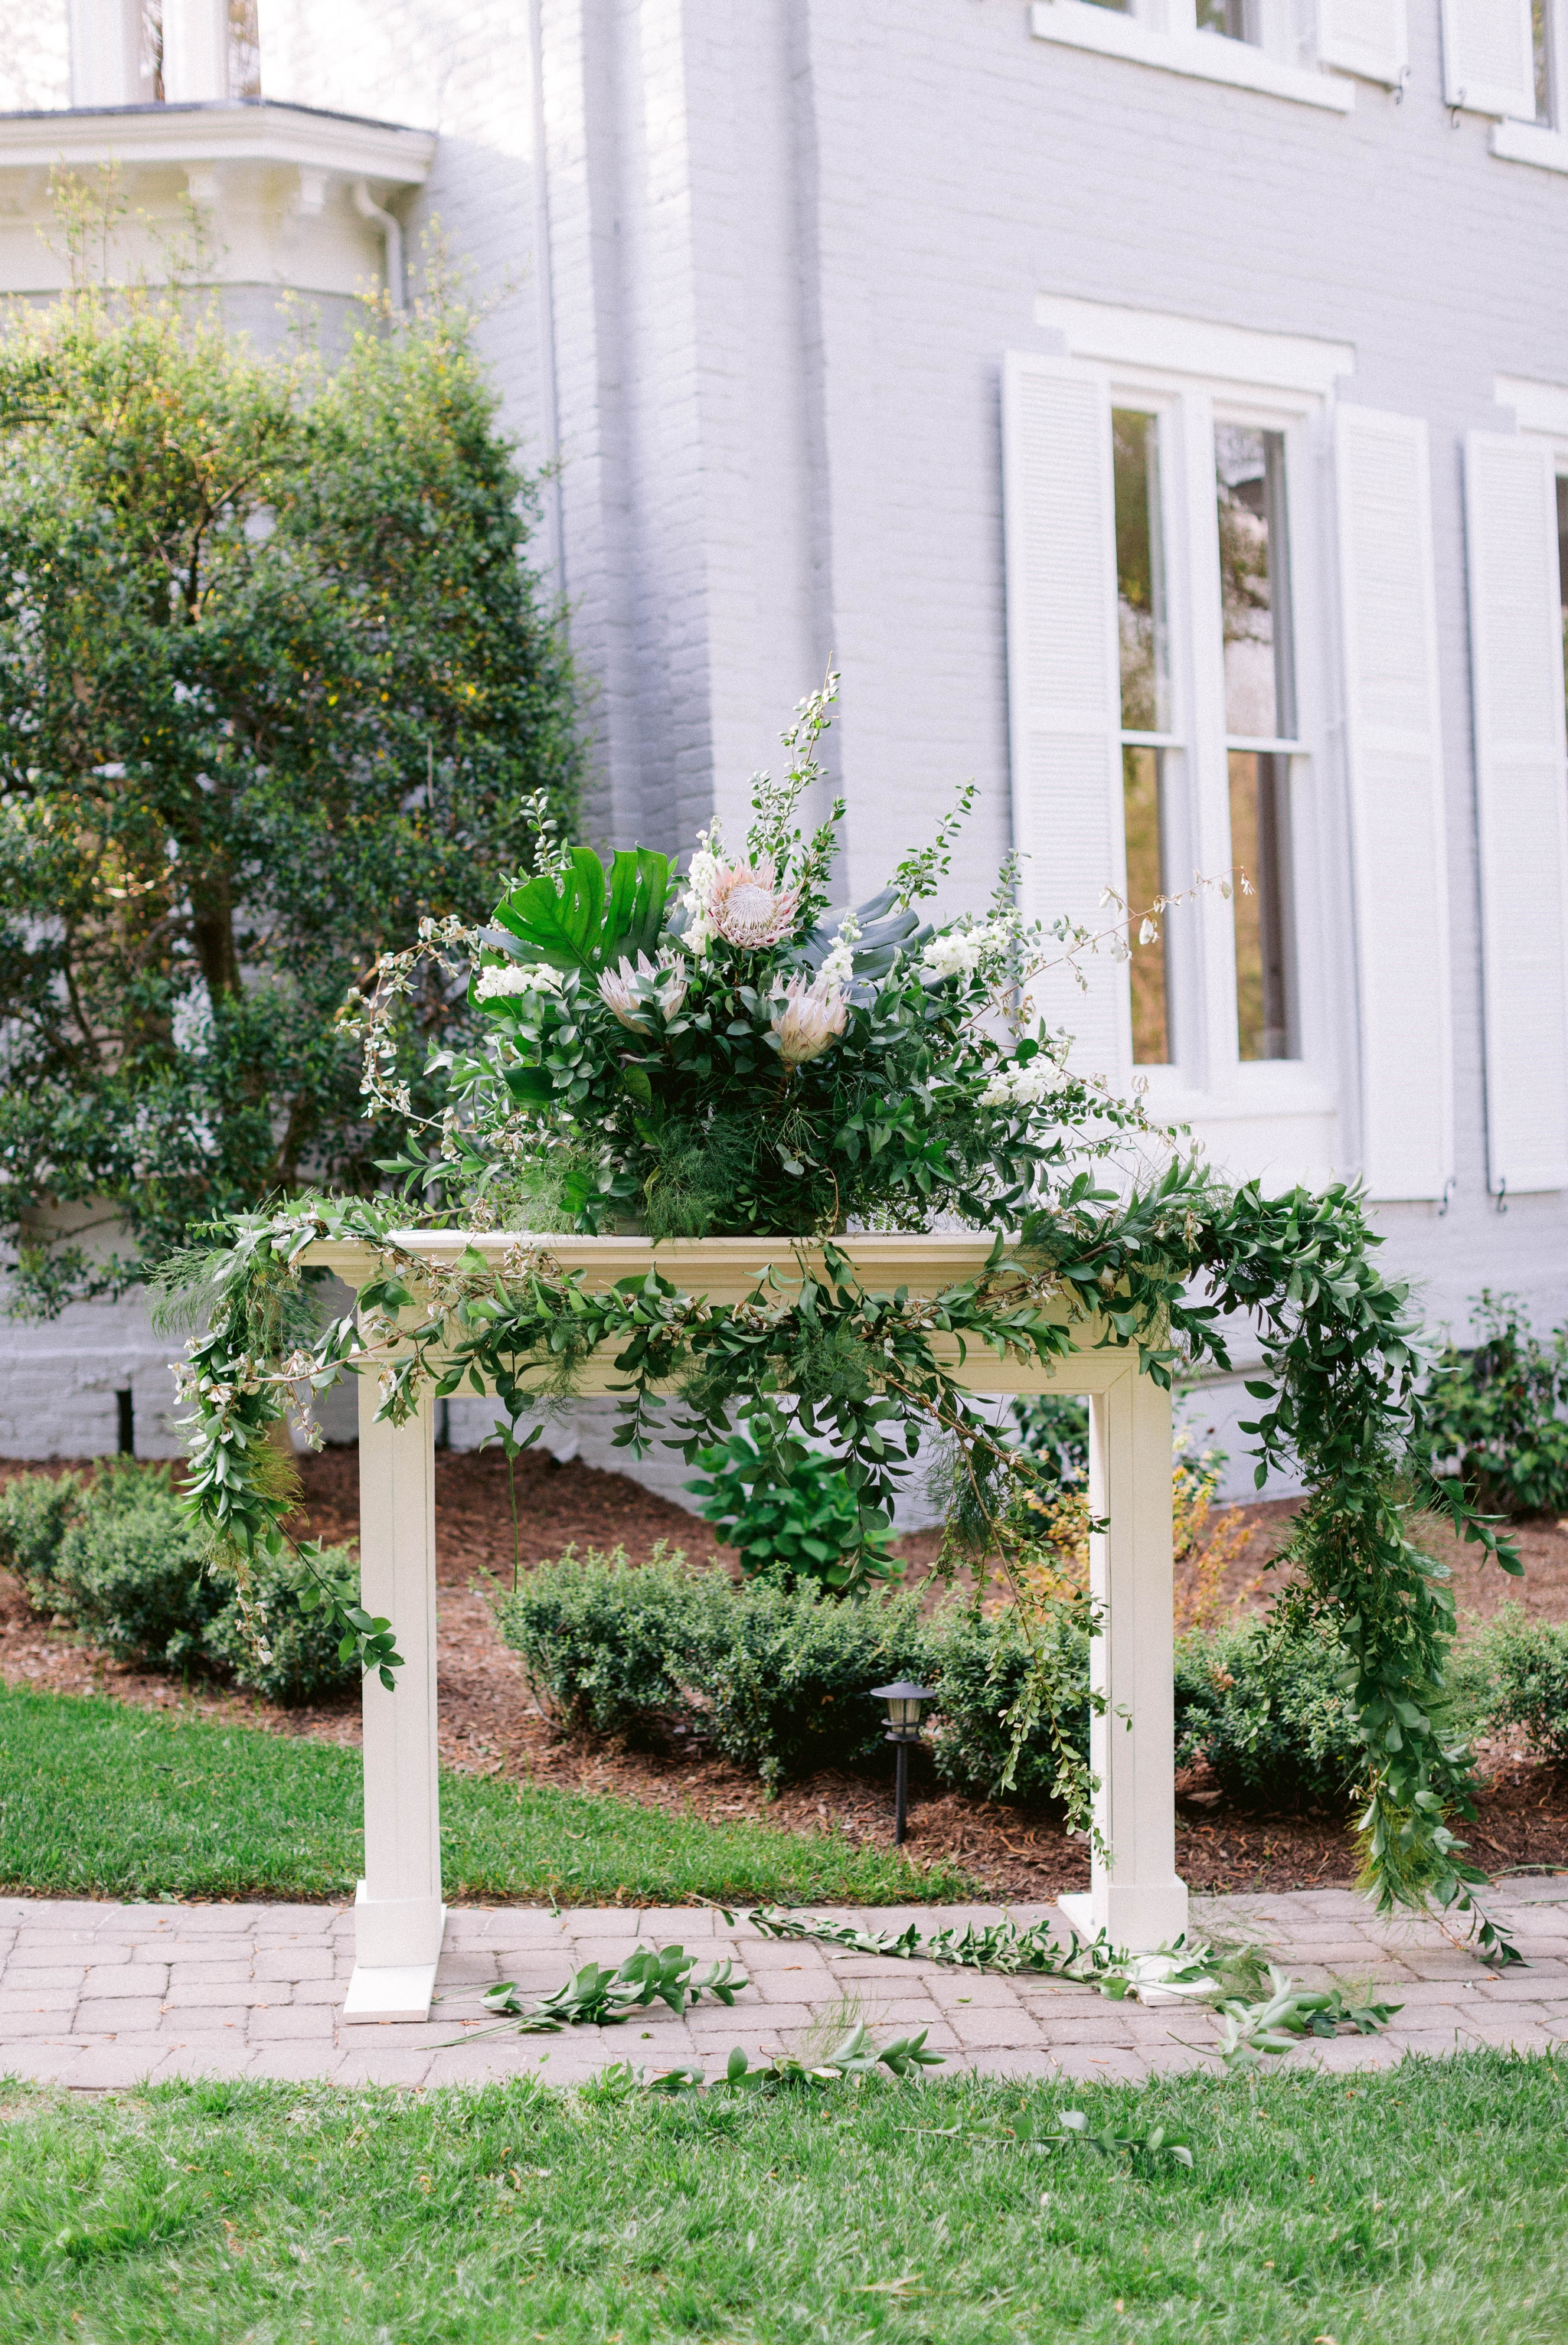 Garden Outdoor Ceremony with brown wooden chairs in front of an all white mansion - Wedding Fireplace mantel with lush green decorations - Honolulu, Oahu, Hawaii Wedding Photographer - Johanna Dye Photography